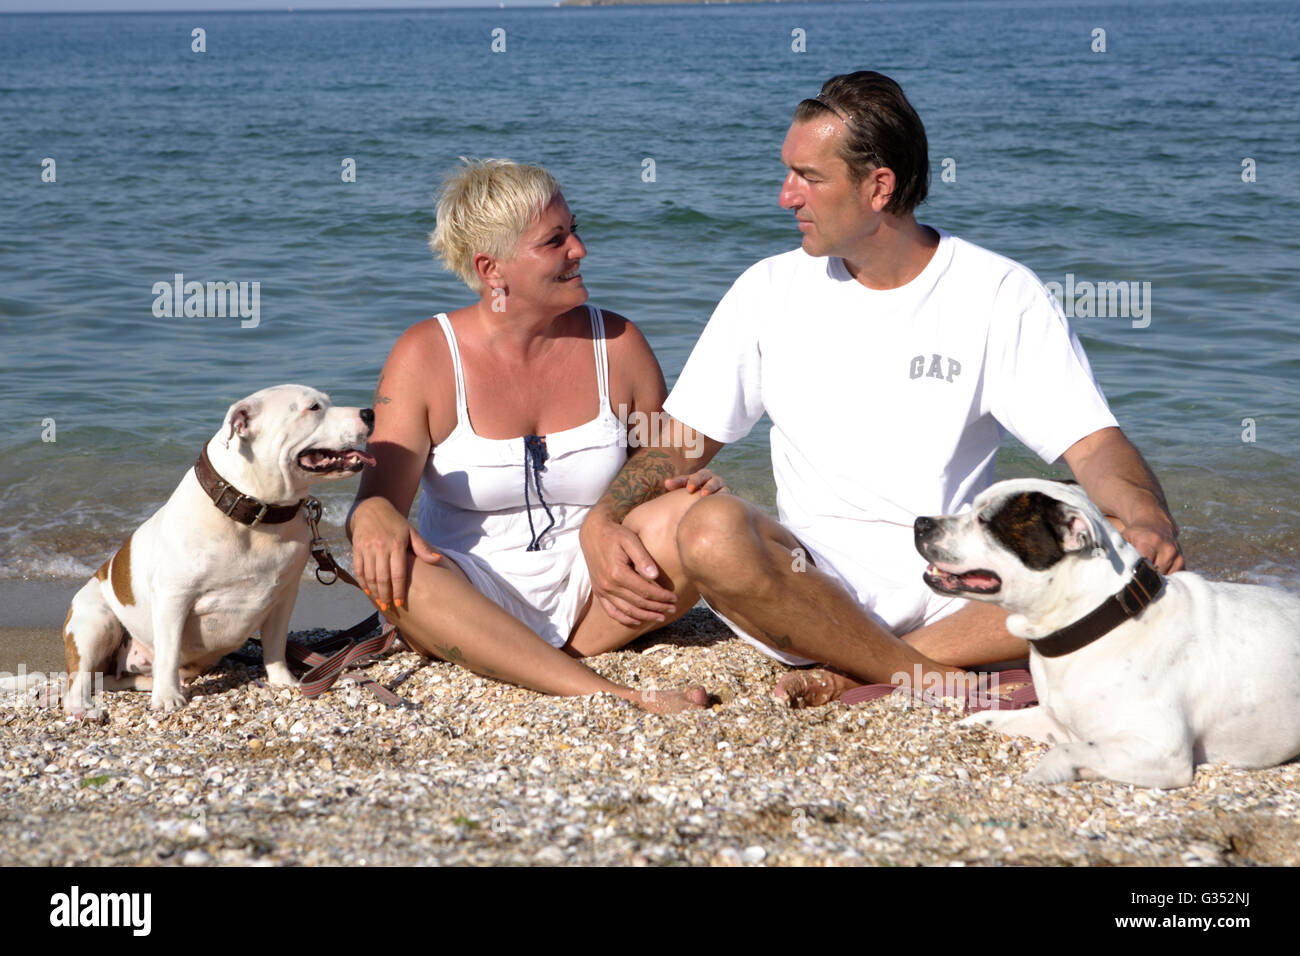 Couple, 41, 50 years, with their dogs, Staffordshire Bull Terriers, on the beach - Stock Image